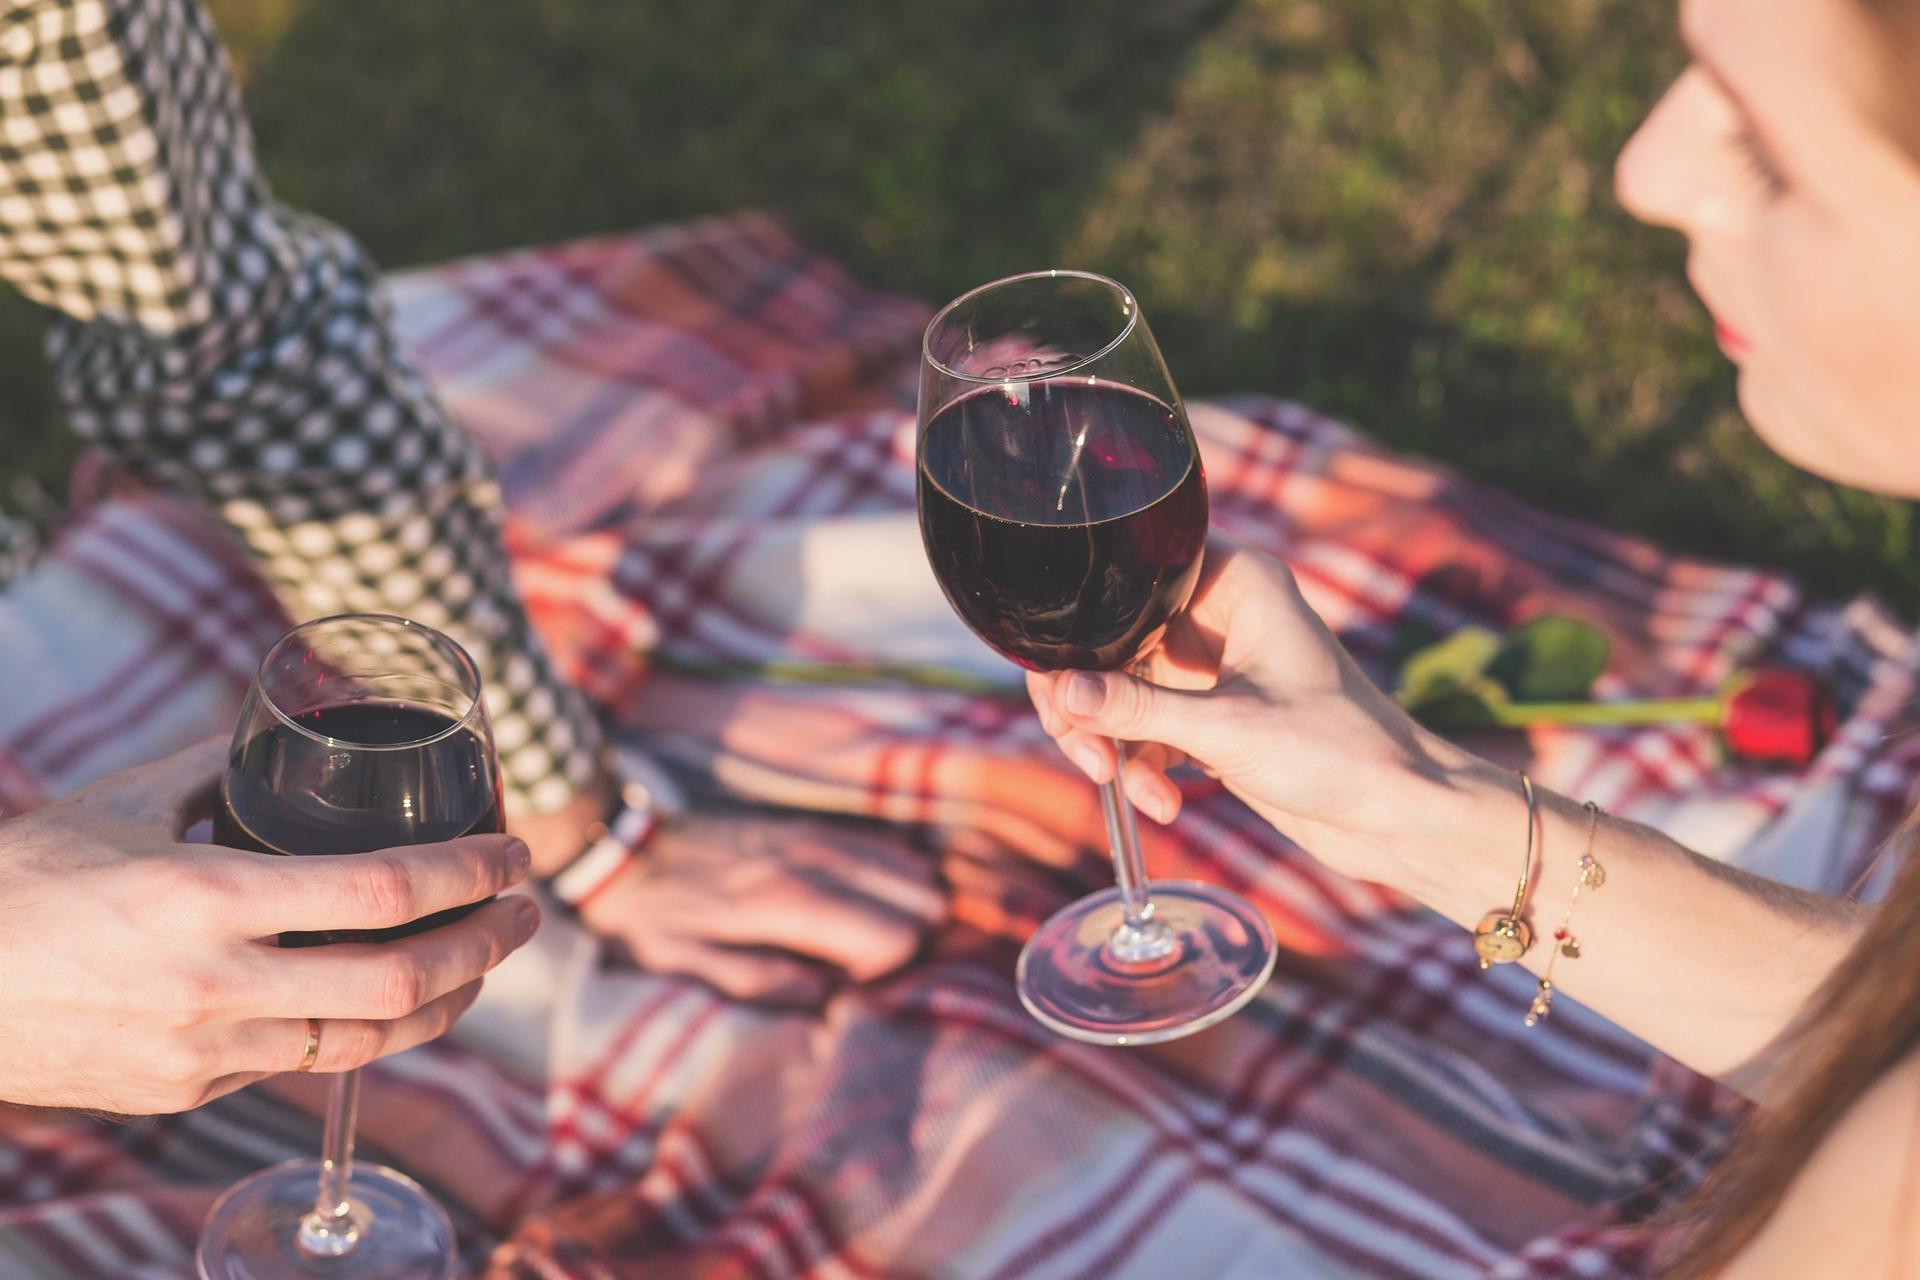 Picnic date with wine